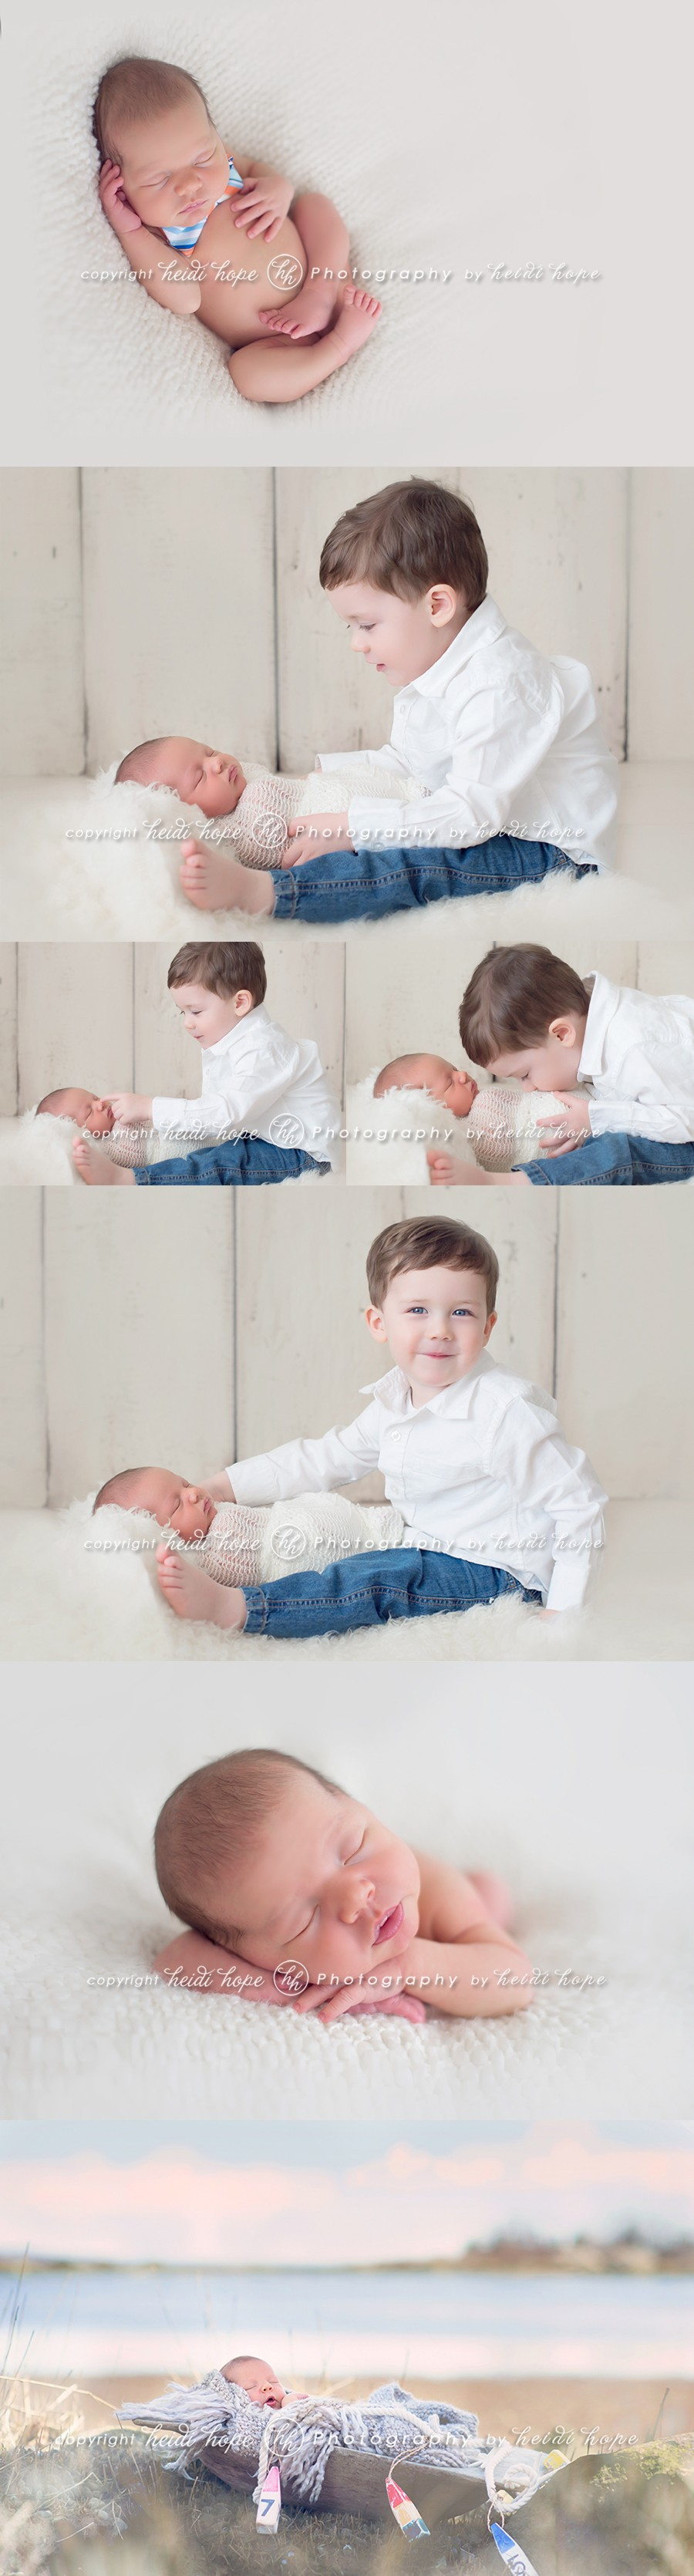 boston-north-shore-newborn-and-big-brother-photographerp